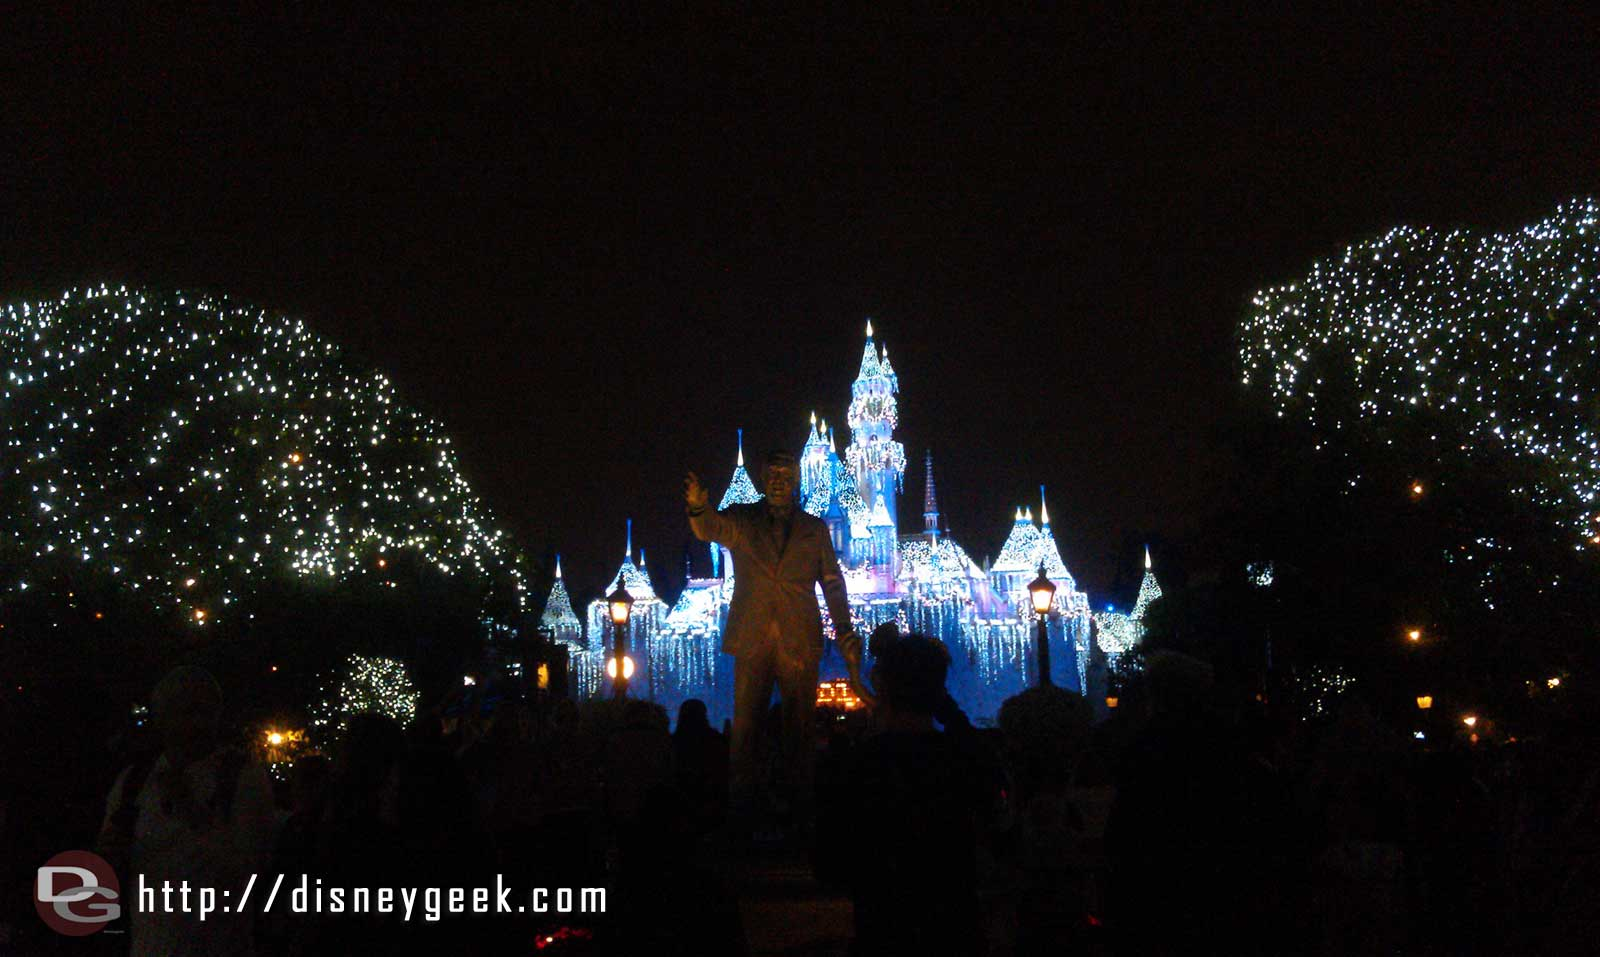 Sleeping Beauty Castle during a Wintertime Enchantment (snow moment)